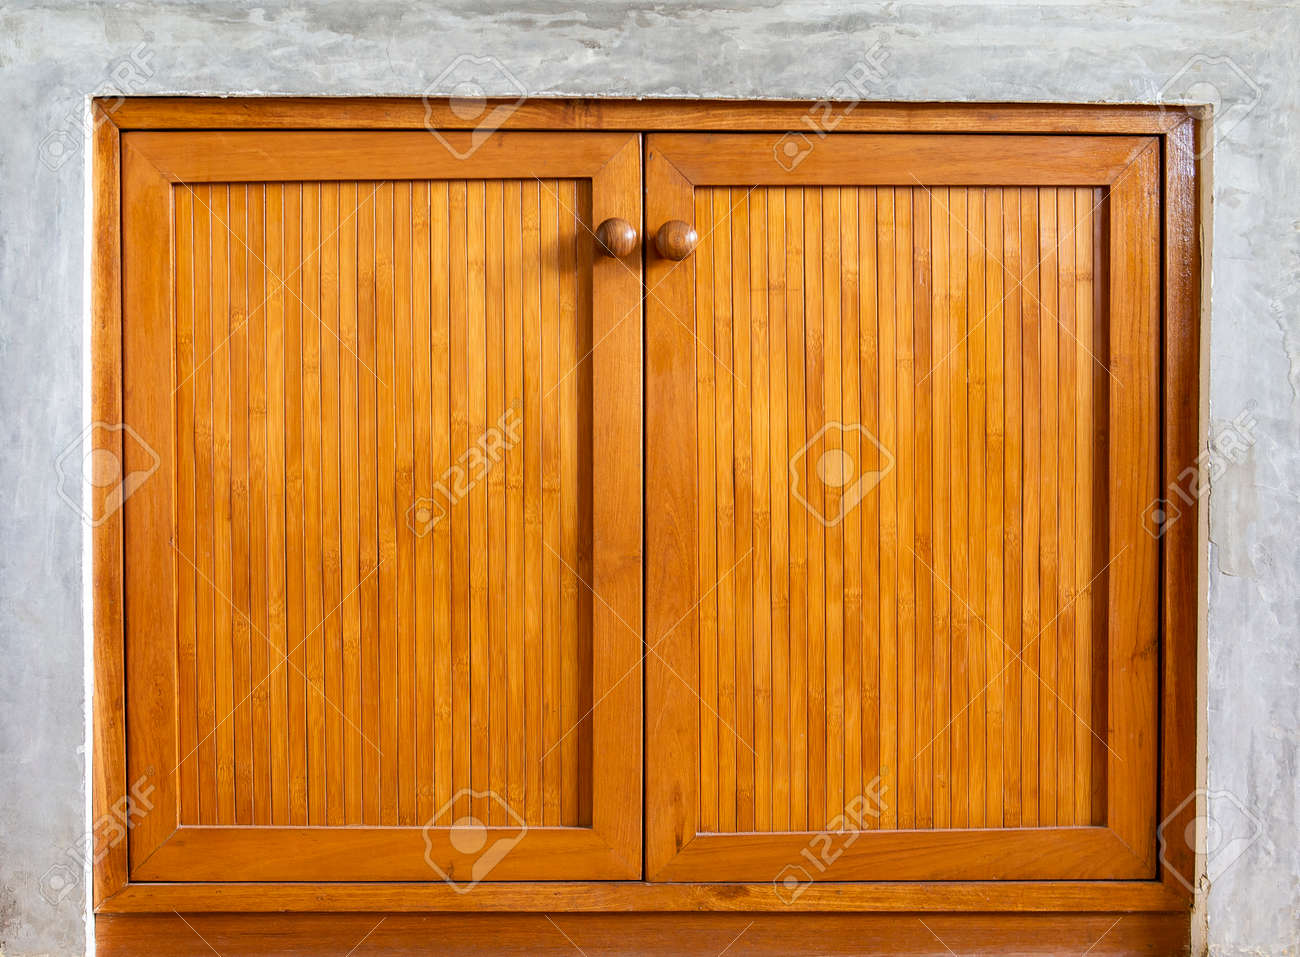 Bamboo Wood Design Door Background Wooden Window With Cement Stock Photo Picture And Royalty Free Image Image 102686042